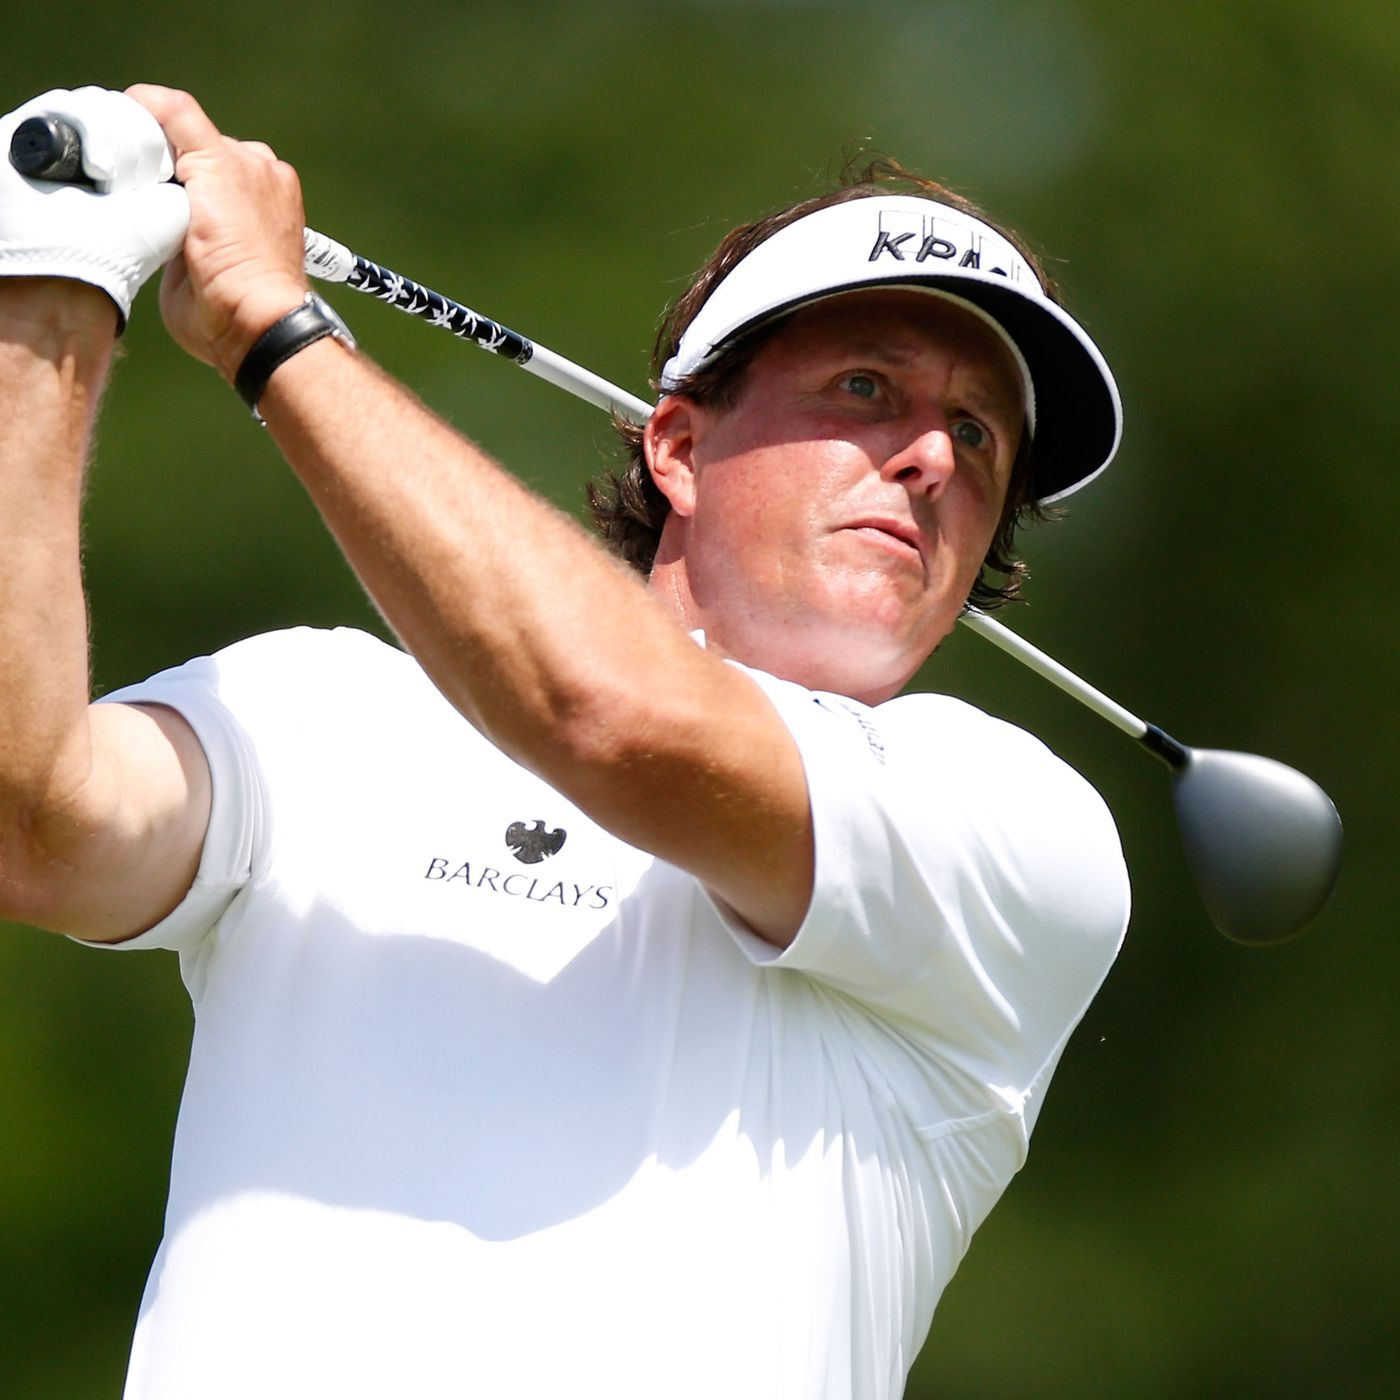 2013 Bridgestone Invitational leaderboard: Phil Mickelson at 2-under after 9